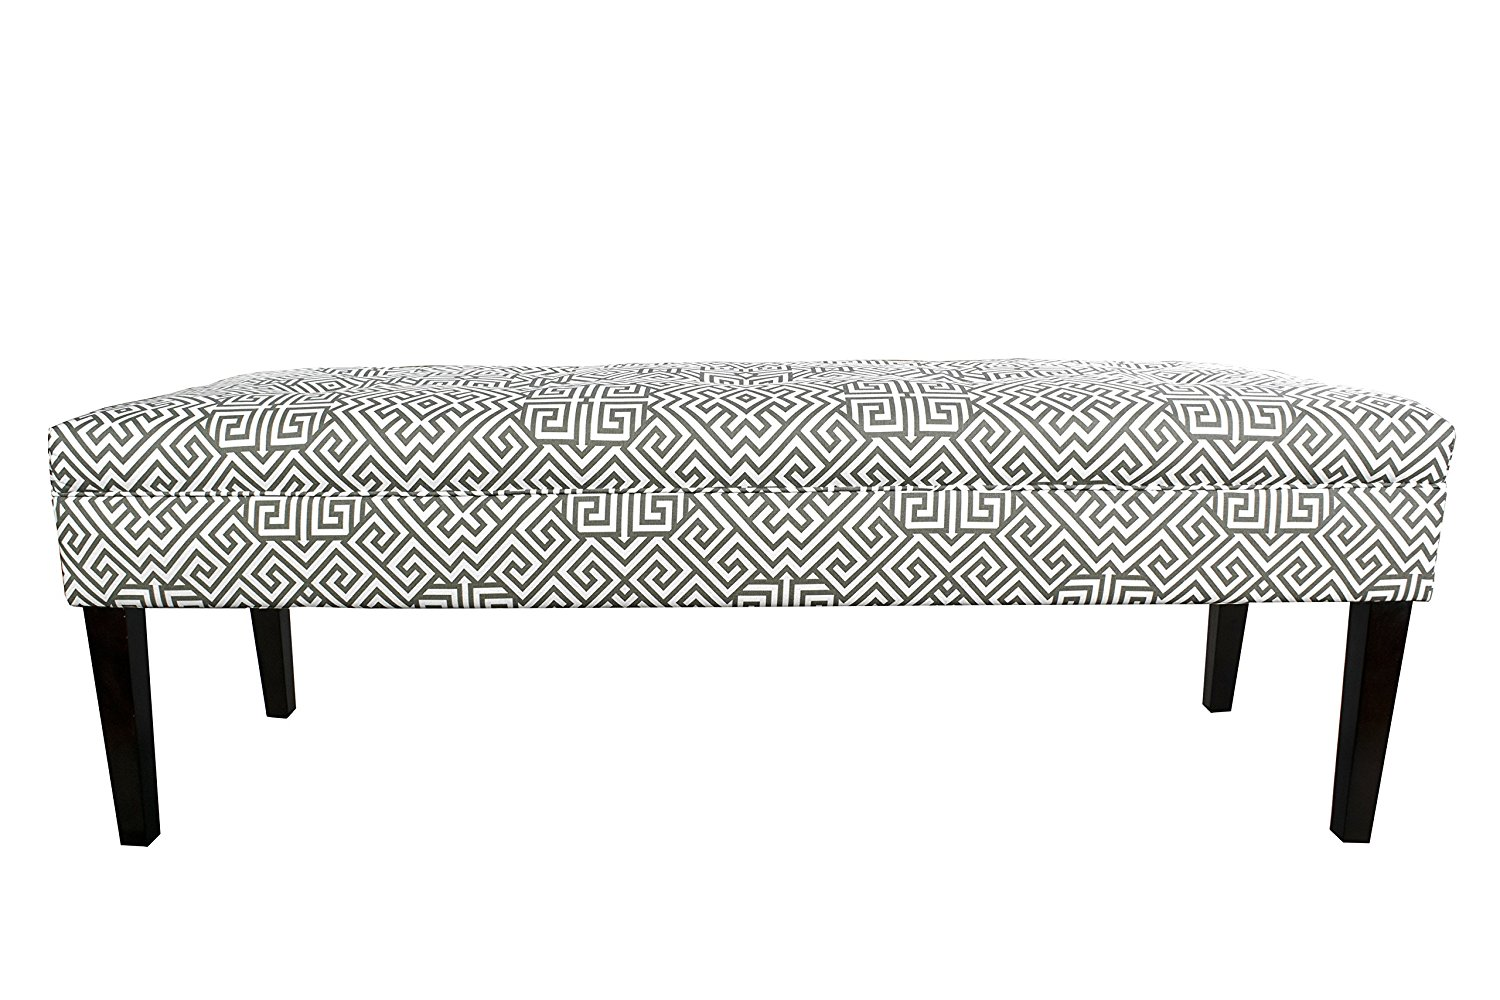 MJL Furniture Designs Kaya Collection Upholstered and Padded Button Tufted Accent Bedroom Bench, Santorini Series, Summerland Gray